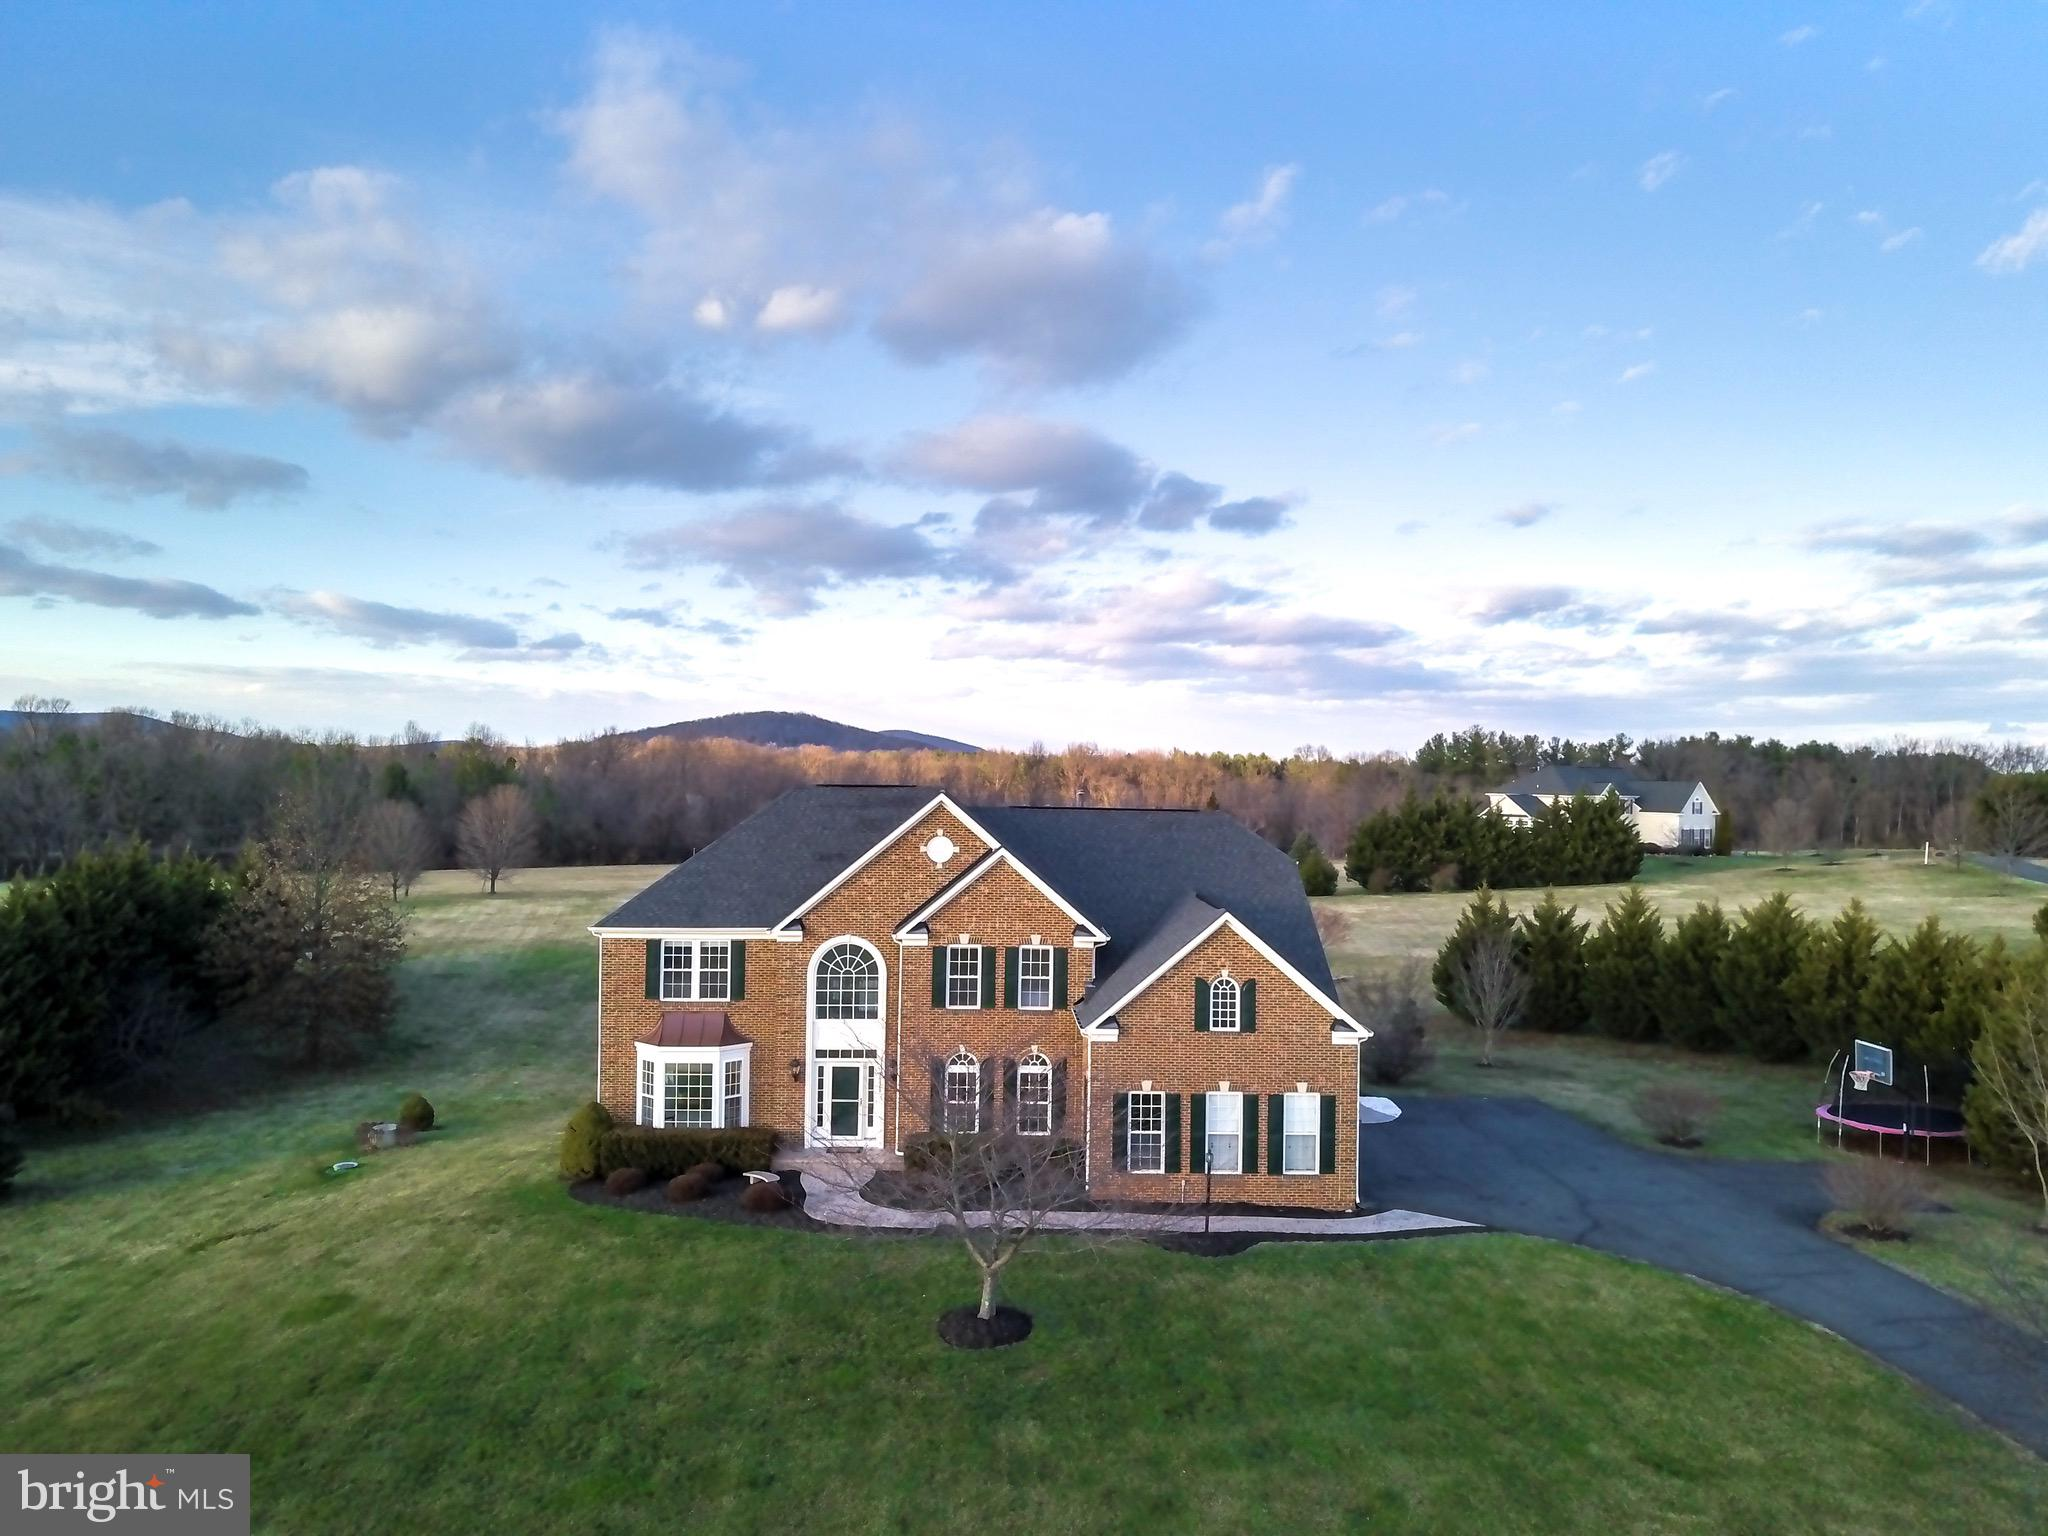 36420 Dwyer Court, Round Hill, VA 20141